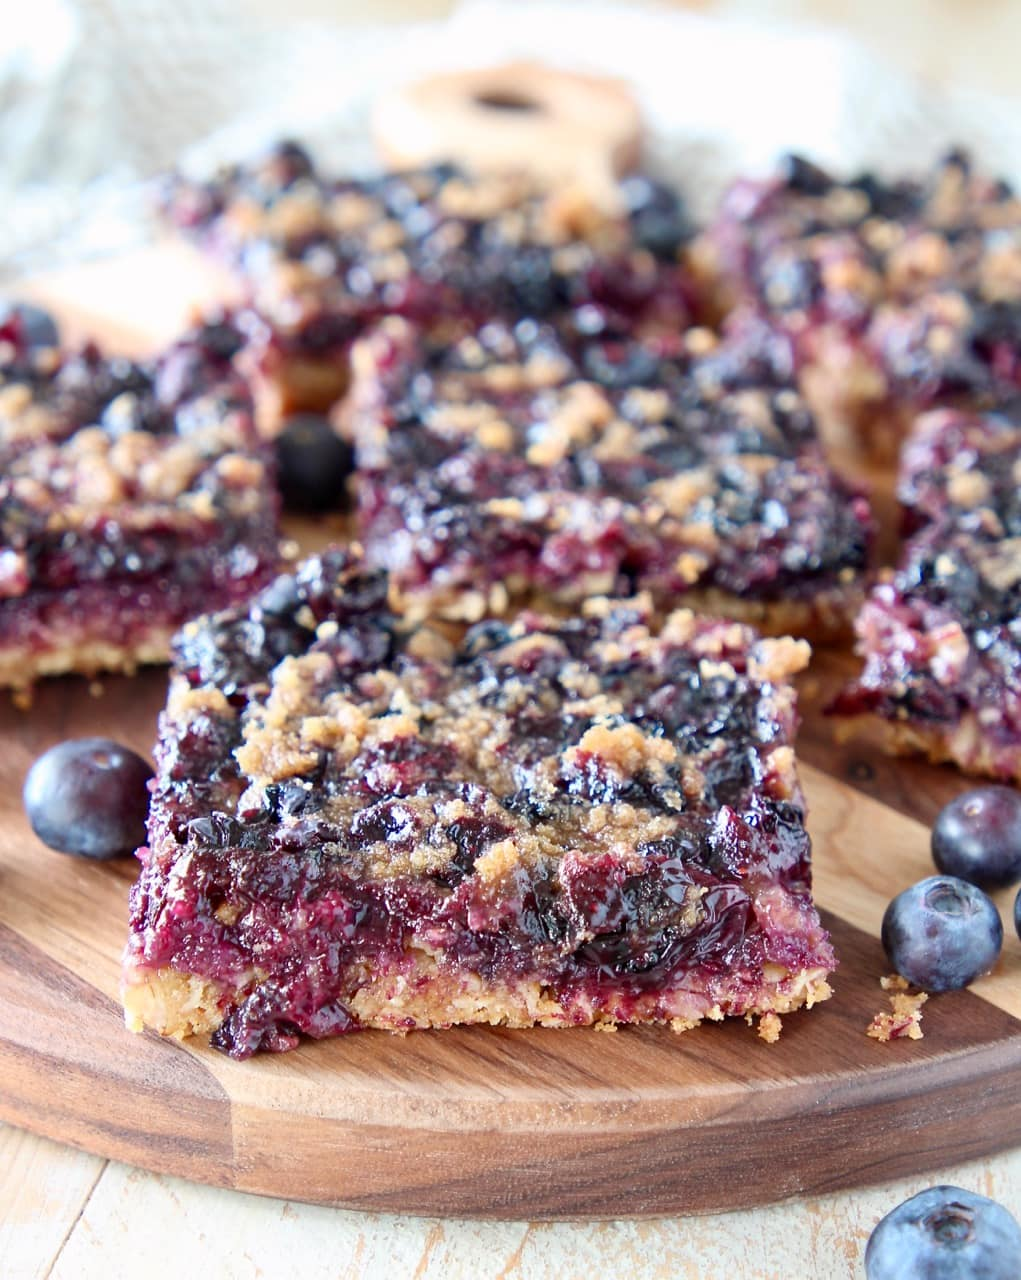 Blueberry oatmeal bars cut into squares, sitting on wood cutting board with fresh blueberries